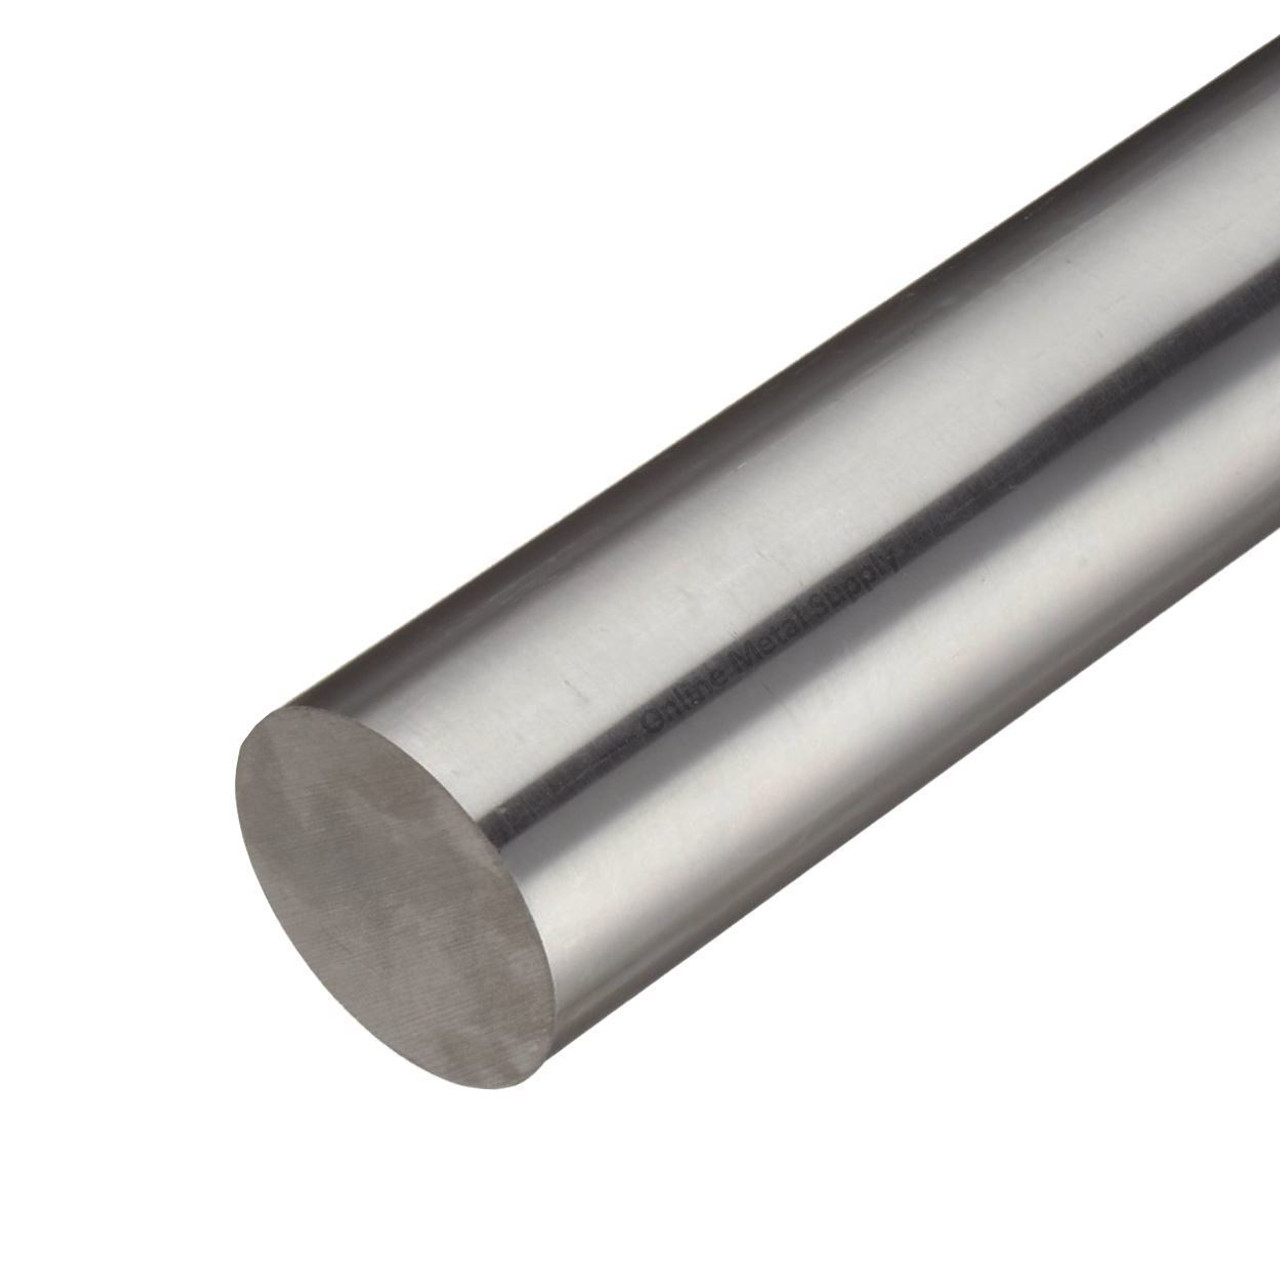 3.625 (3-5/8 inch) x 12 inches, 17-4 Cond A CF Stainless Steel Round Rod